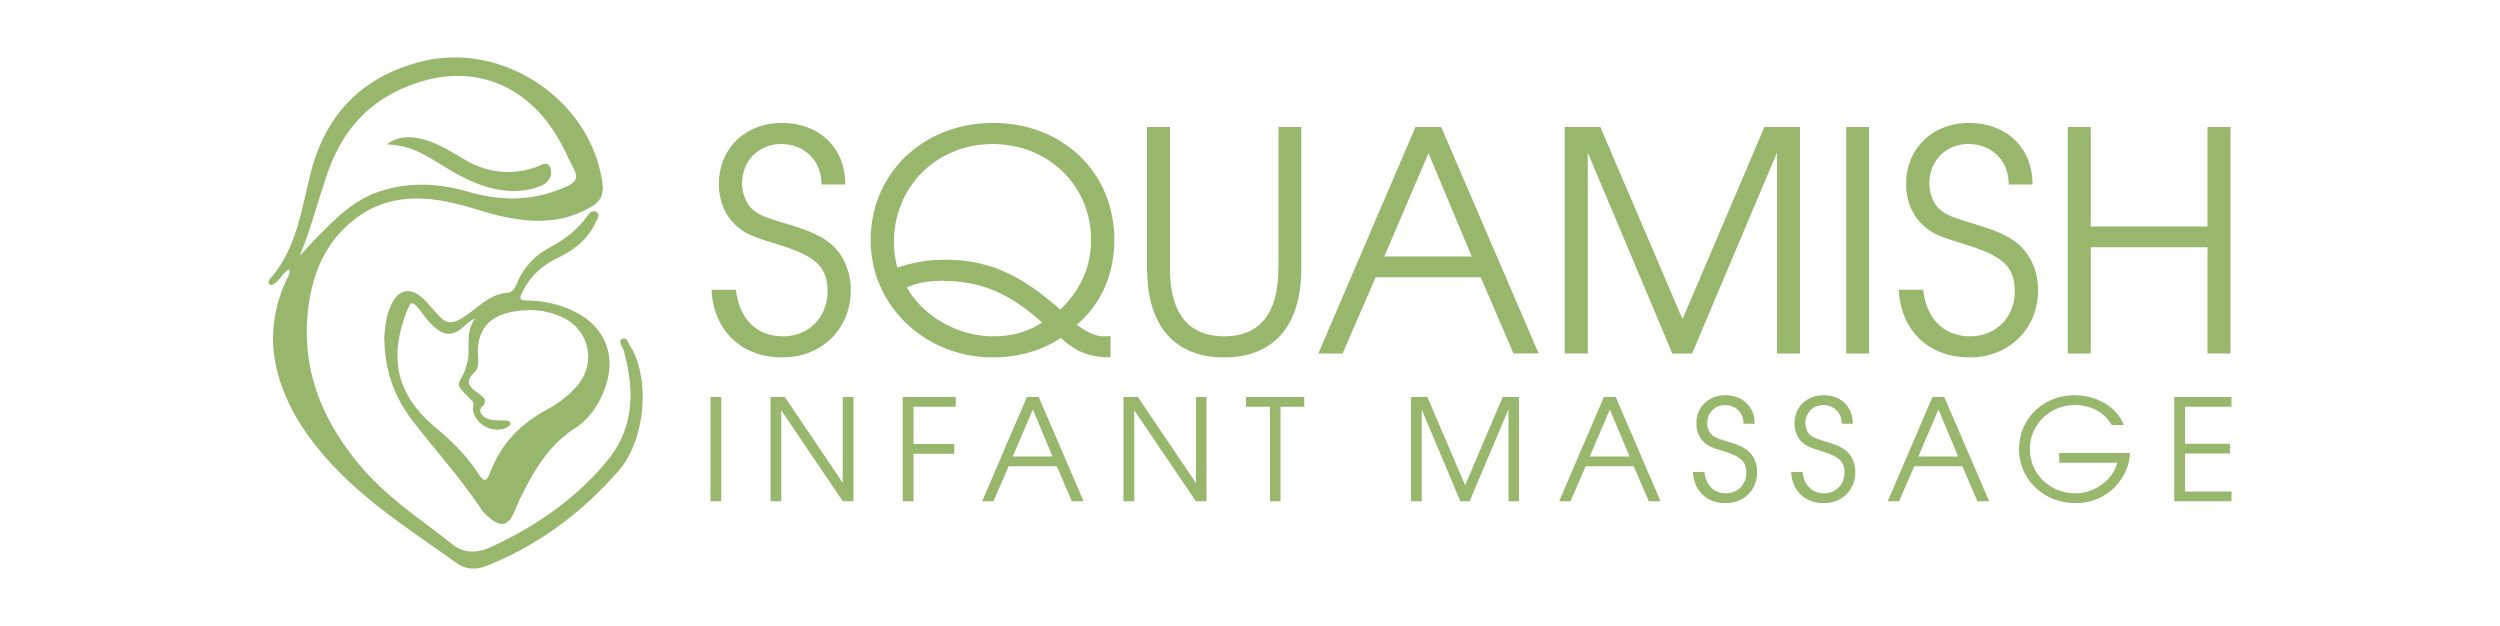 Squamish Infant Massage